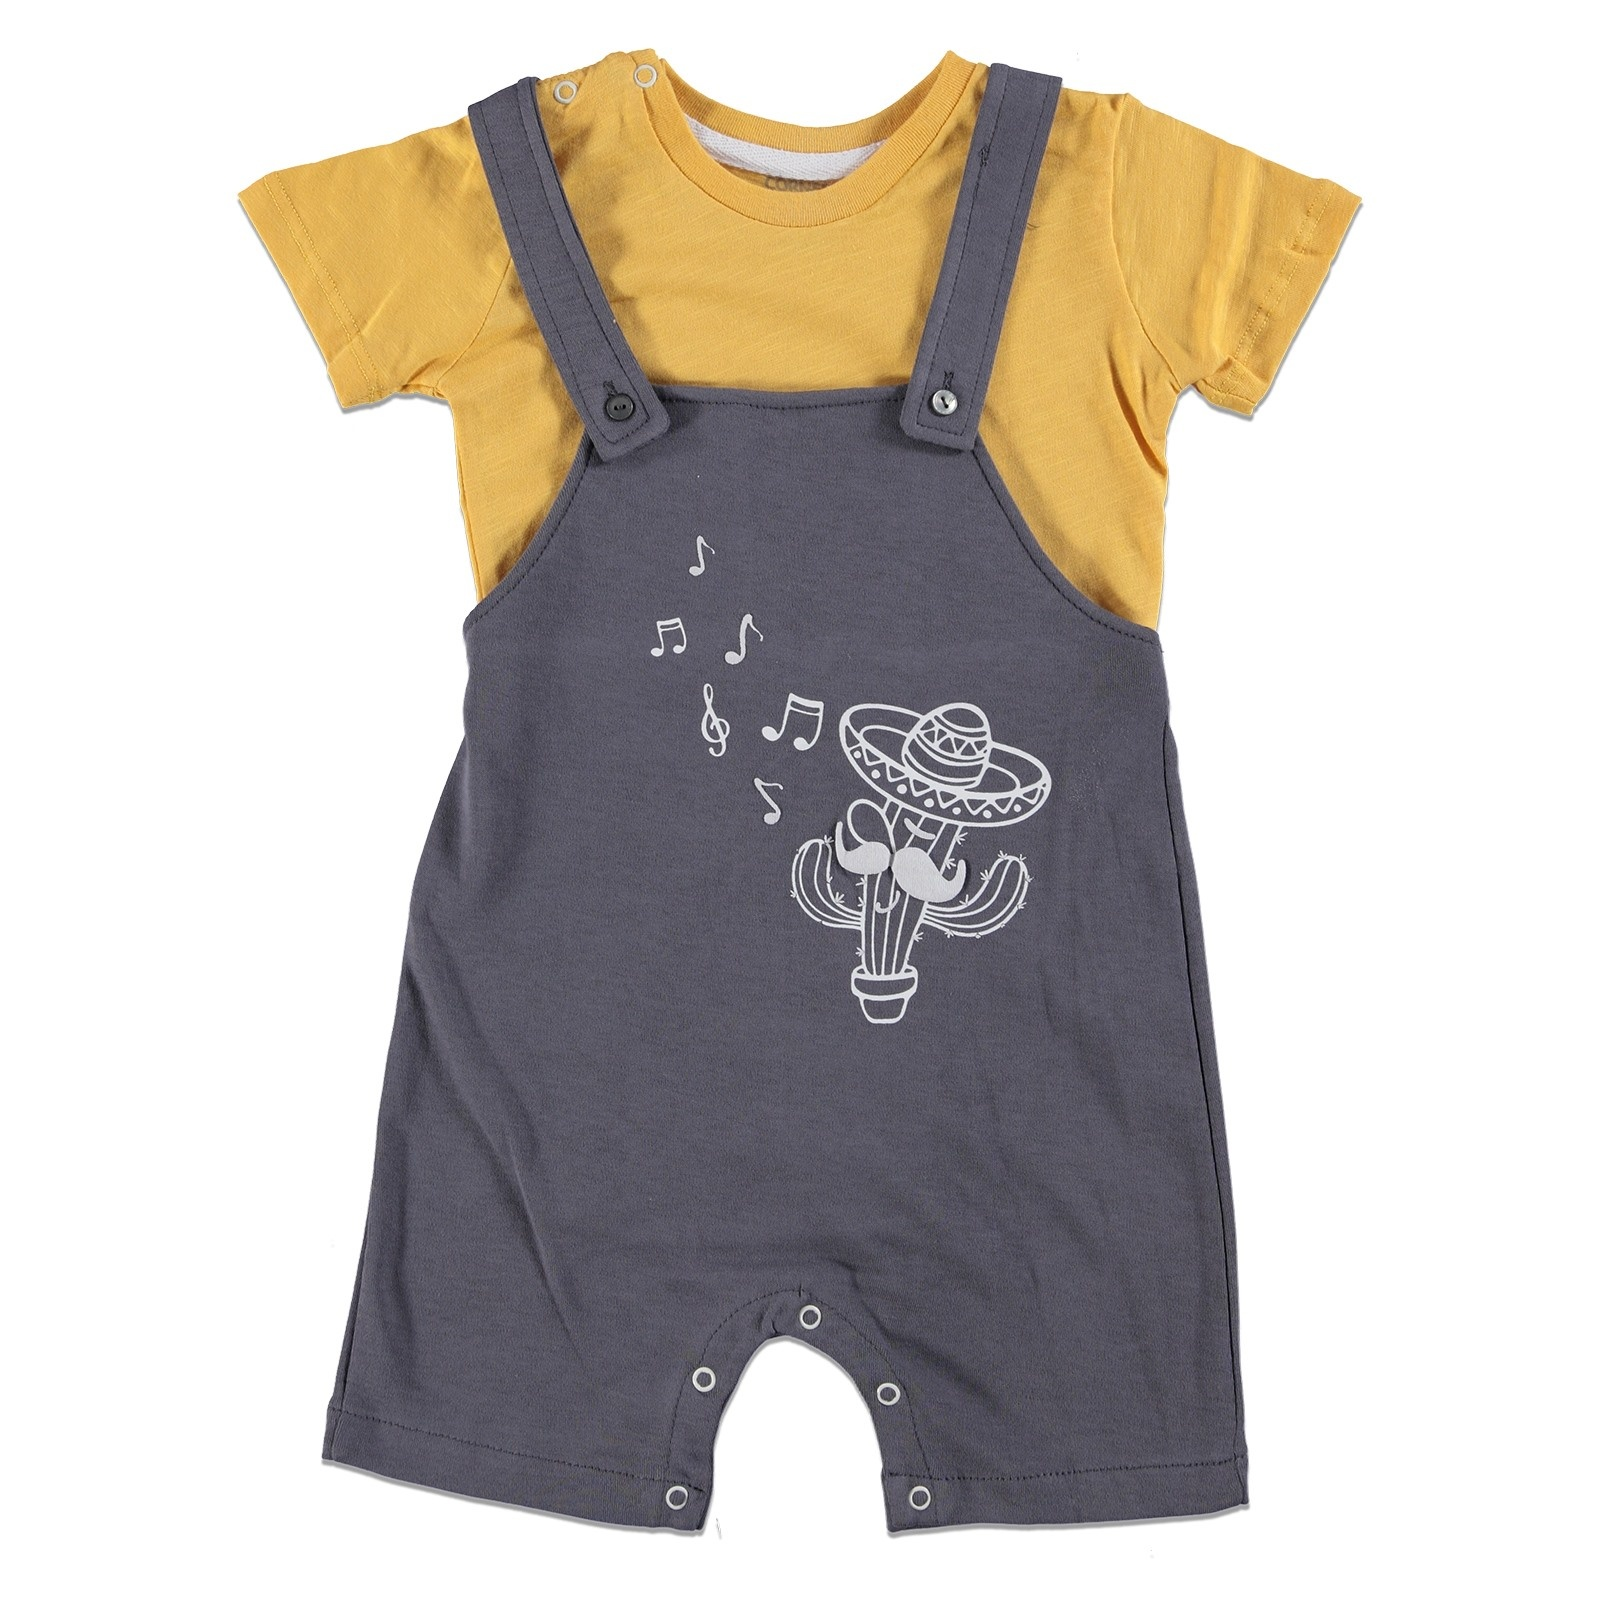 Ebebek Baby Corner Boy Arizona Dungarees Bodysuit Set